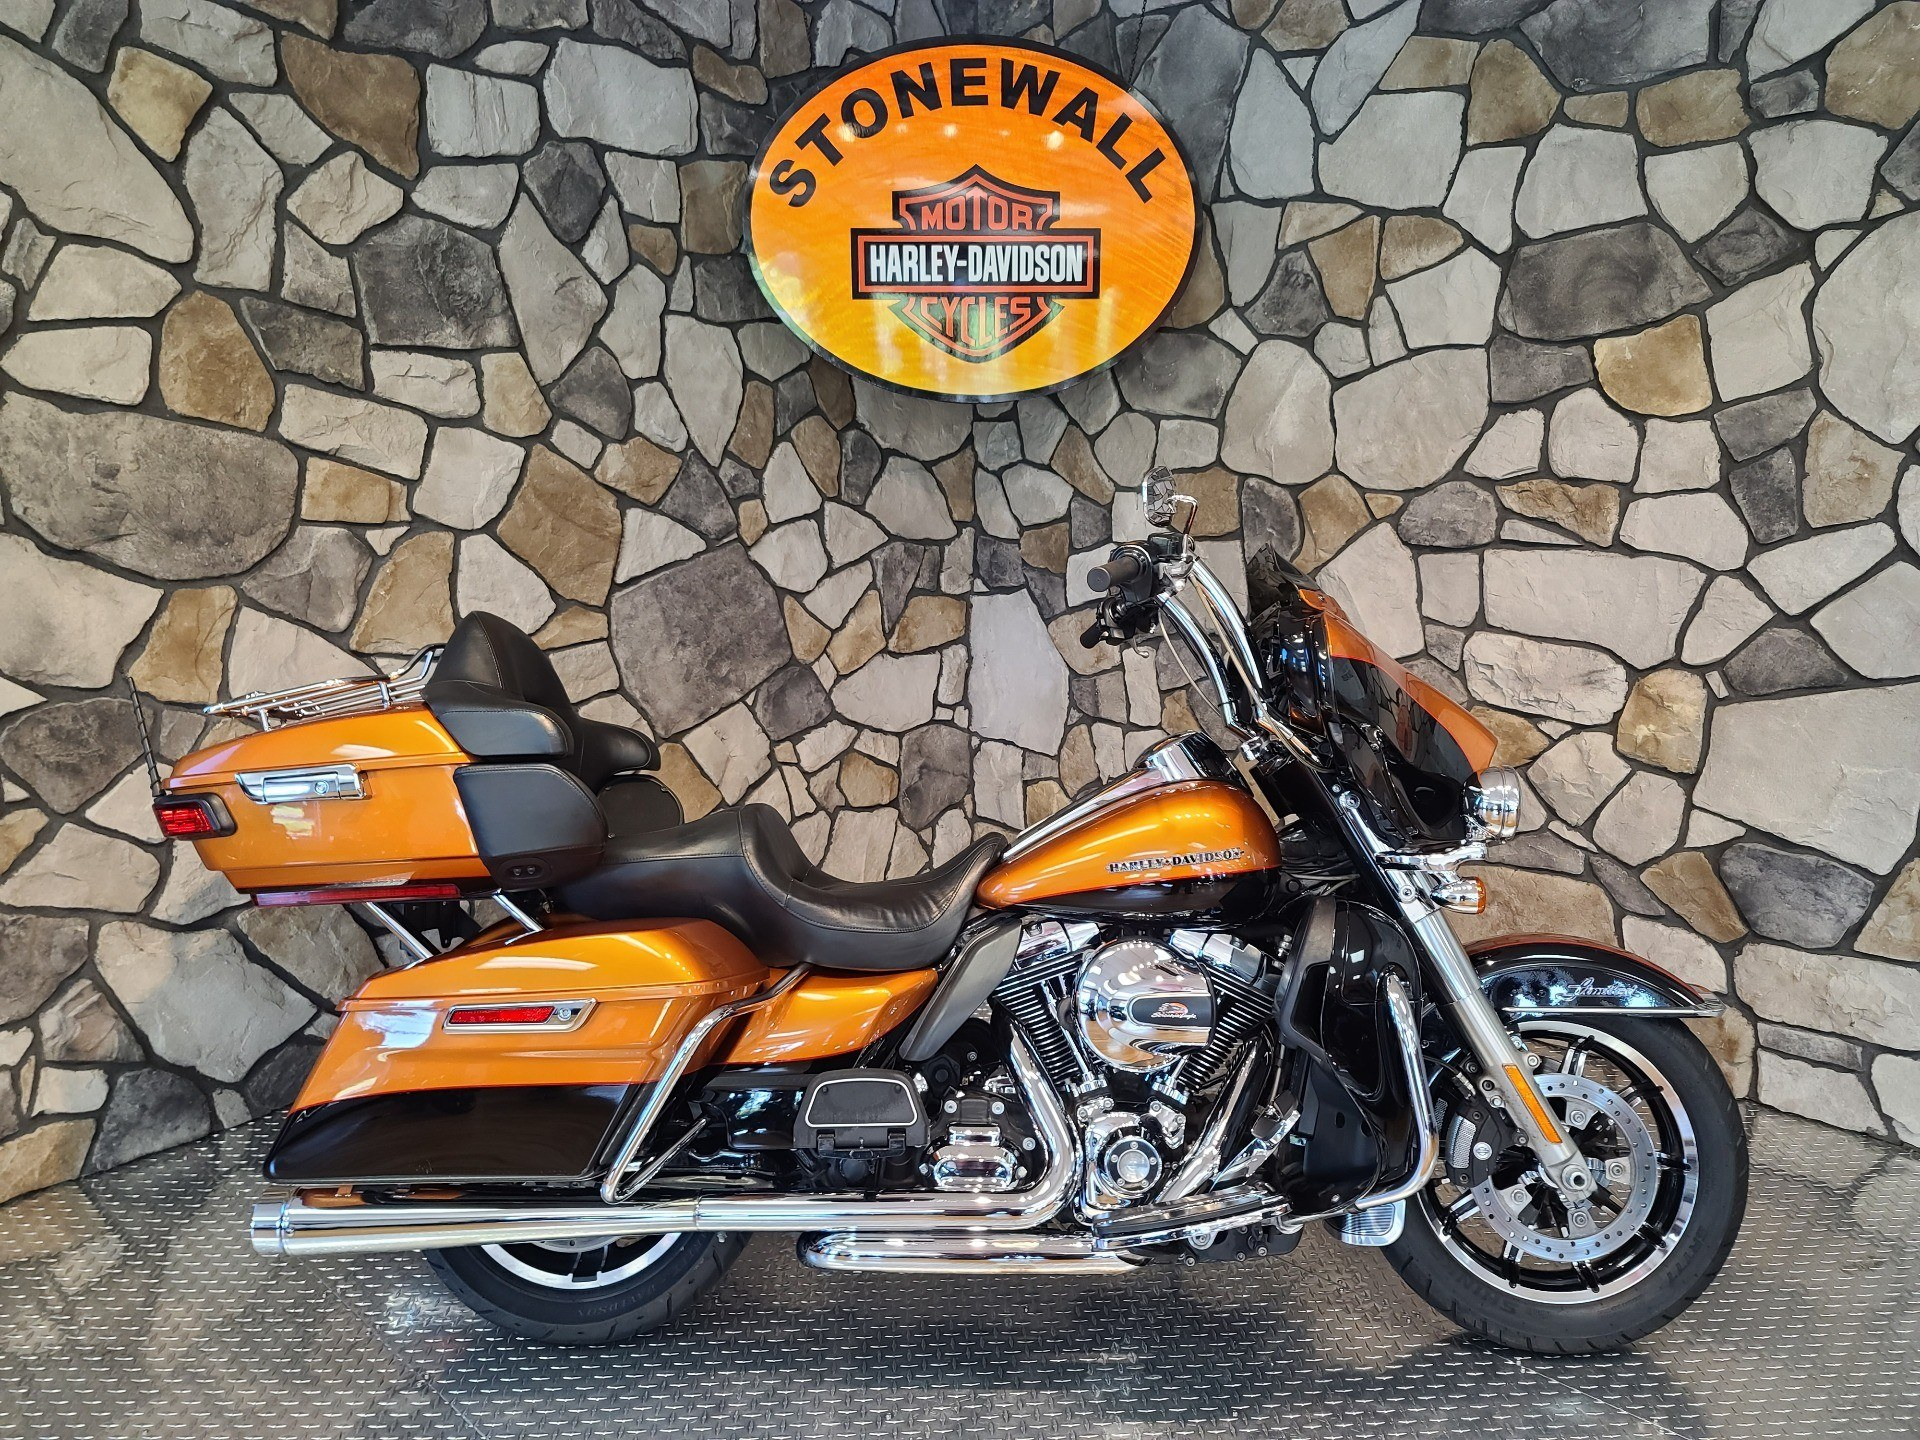 2014 Harley-Davidson Ultra Limited in Orange, Virginia - Photo 1